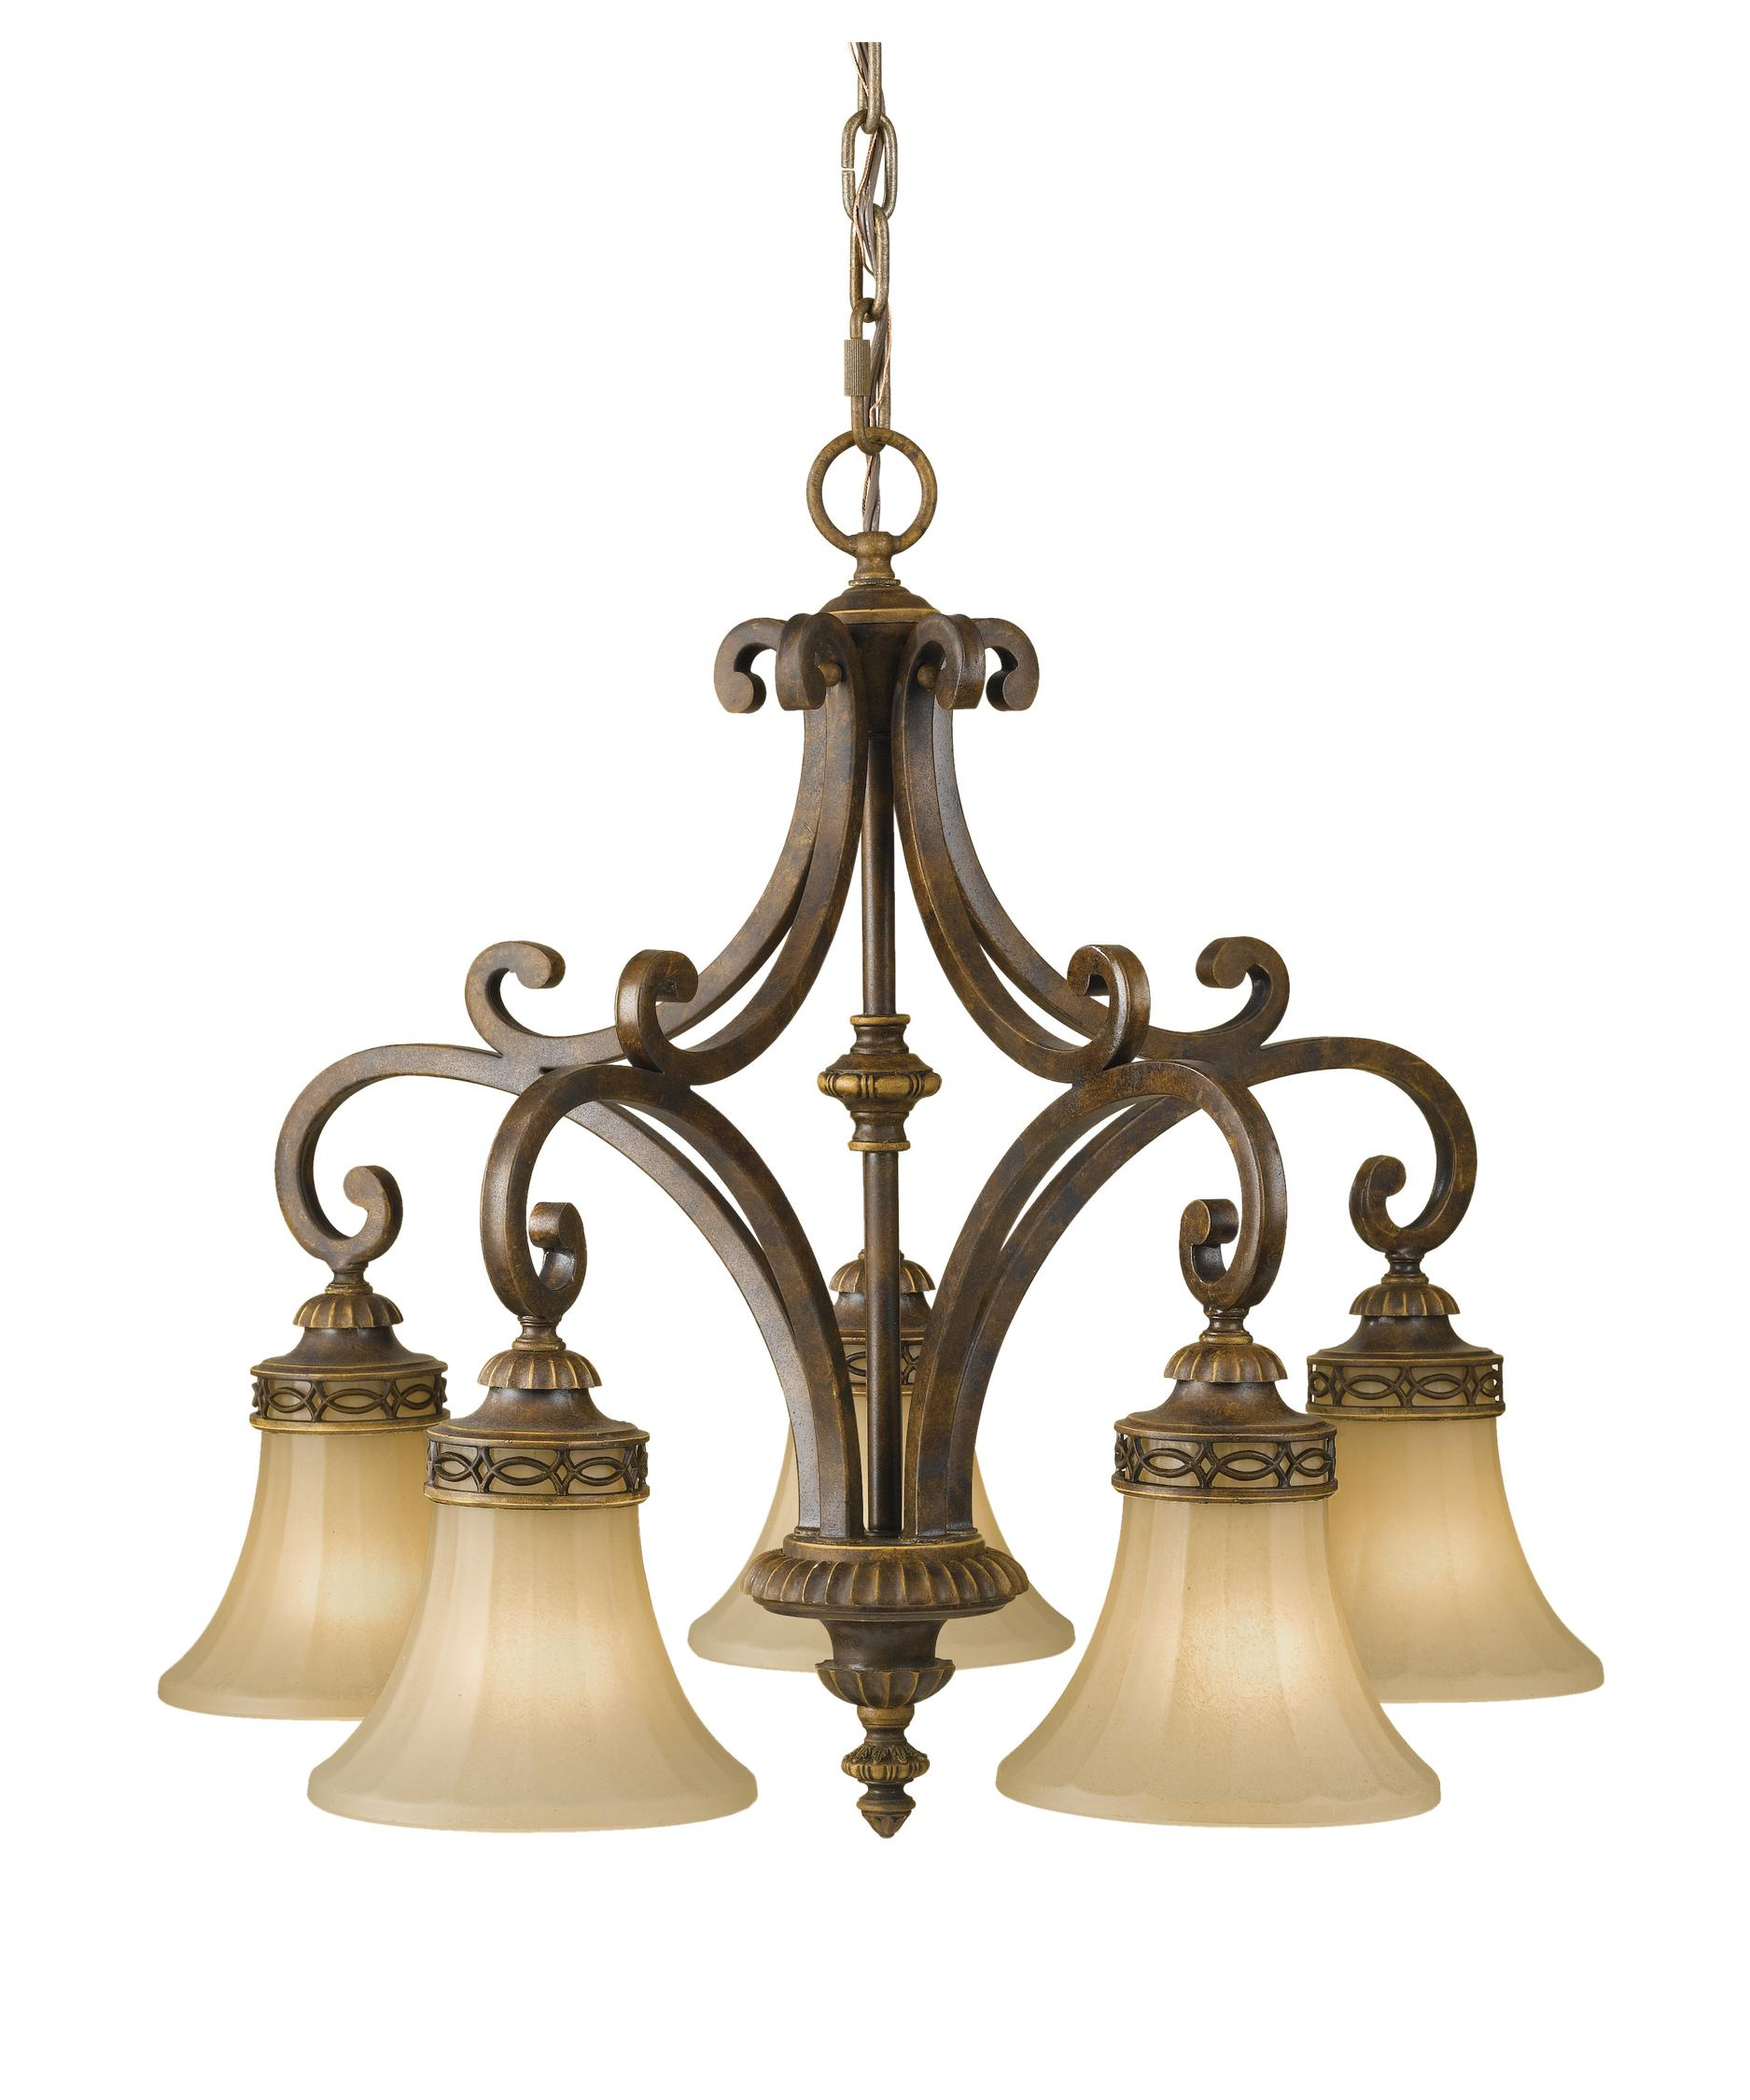 Murray Feiss Drawing Room 25 Inch Wide 5 Light Chandelier – Murray Feiss Chandeliers